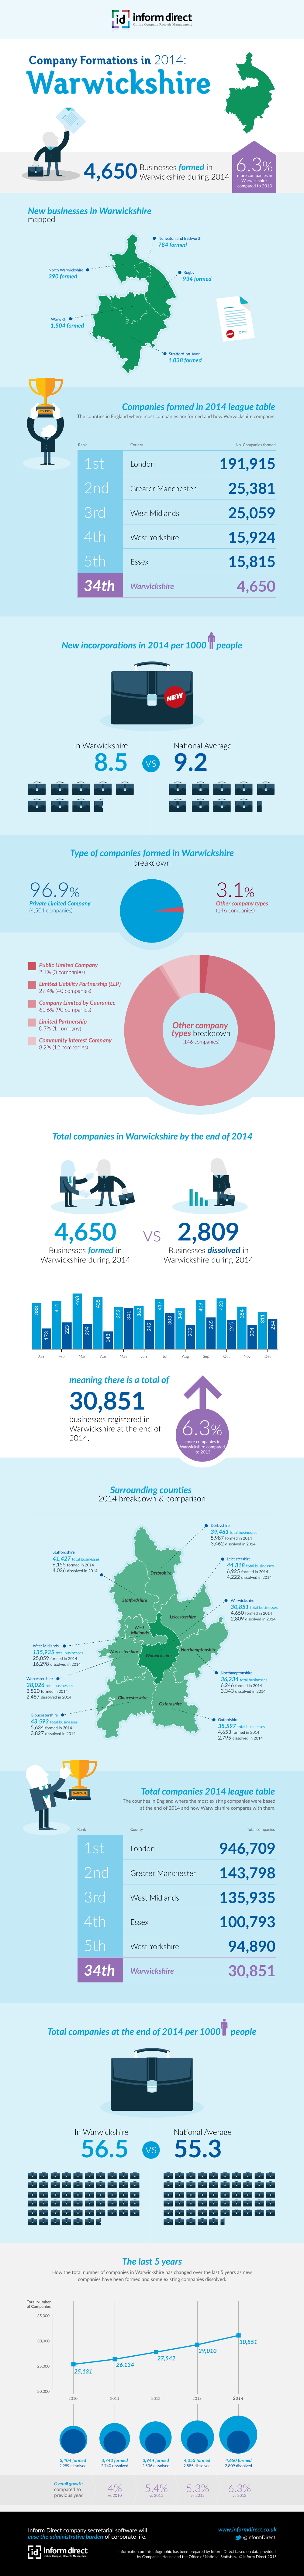 Inform Direct - Company Formations in Warwickshire 2014 Infographic